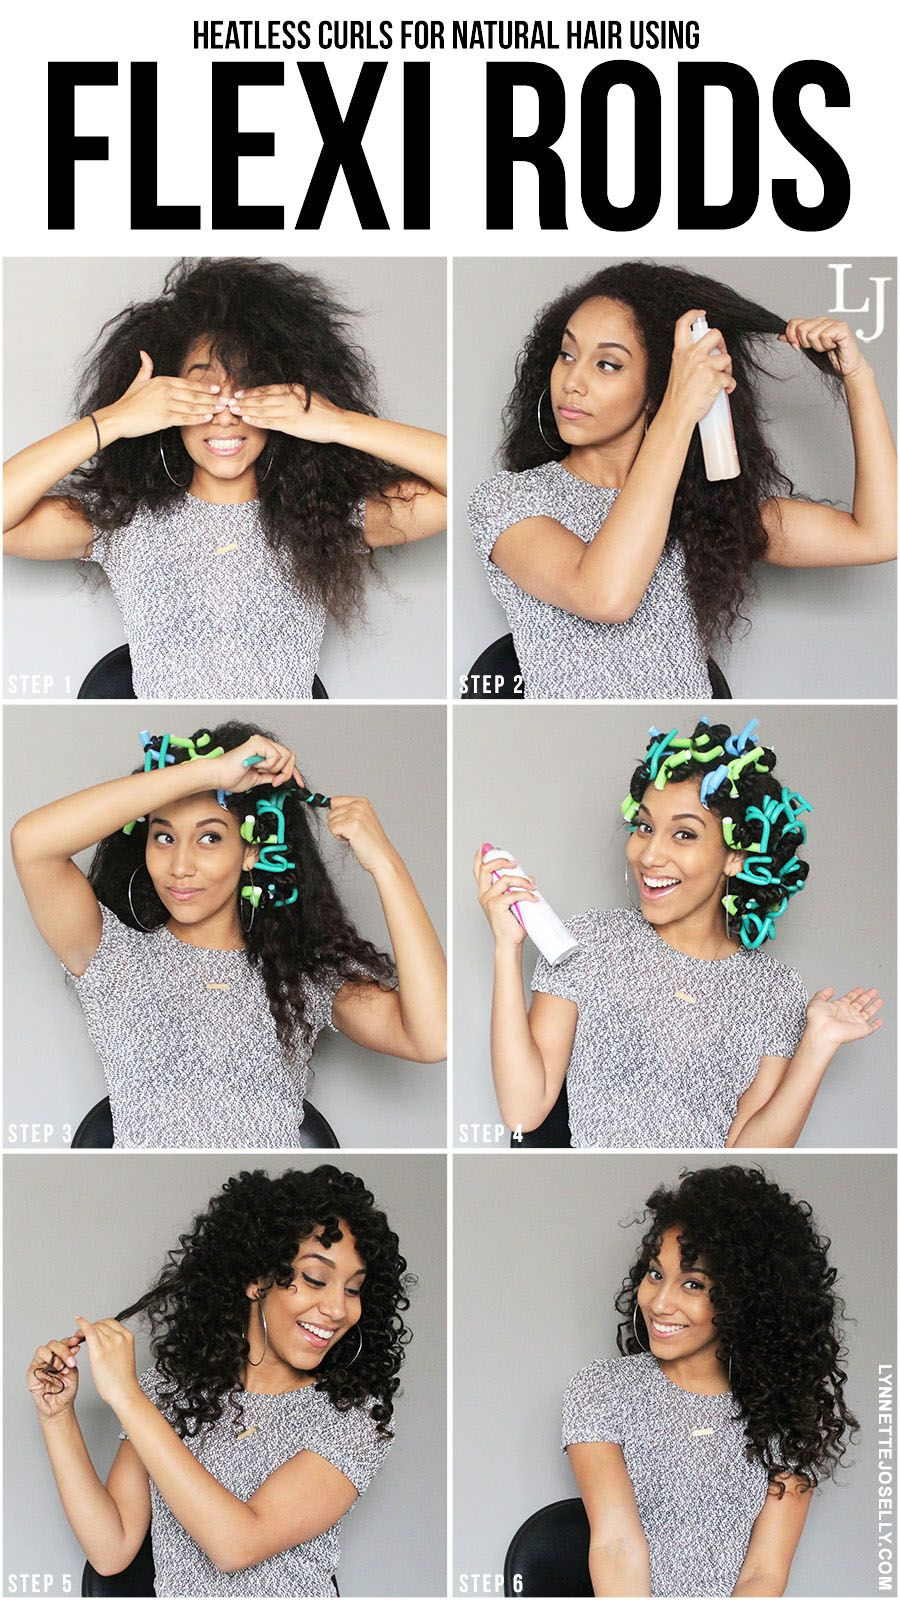 Heatless Curls For Natural Hair Using Flexi Rods Natural Hair Styles Heatless Curls Curly Hair Styles